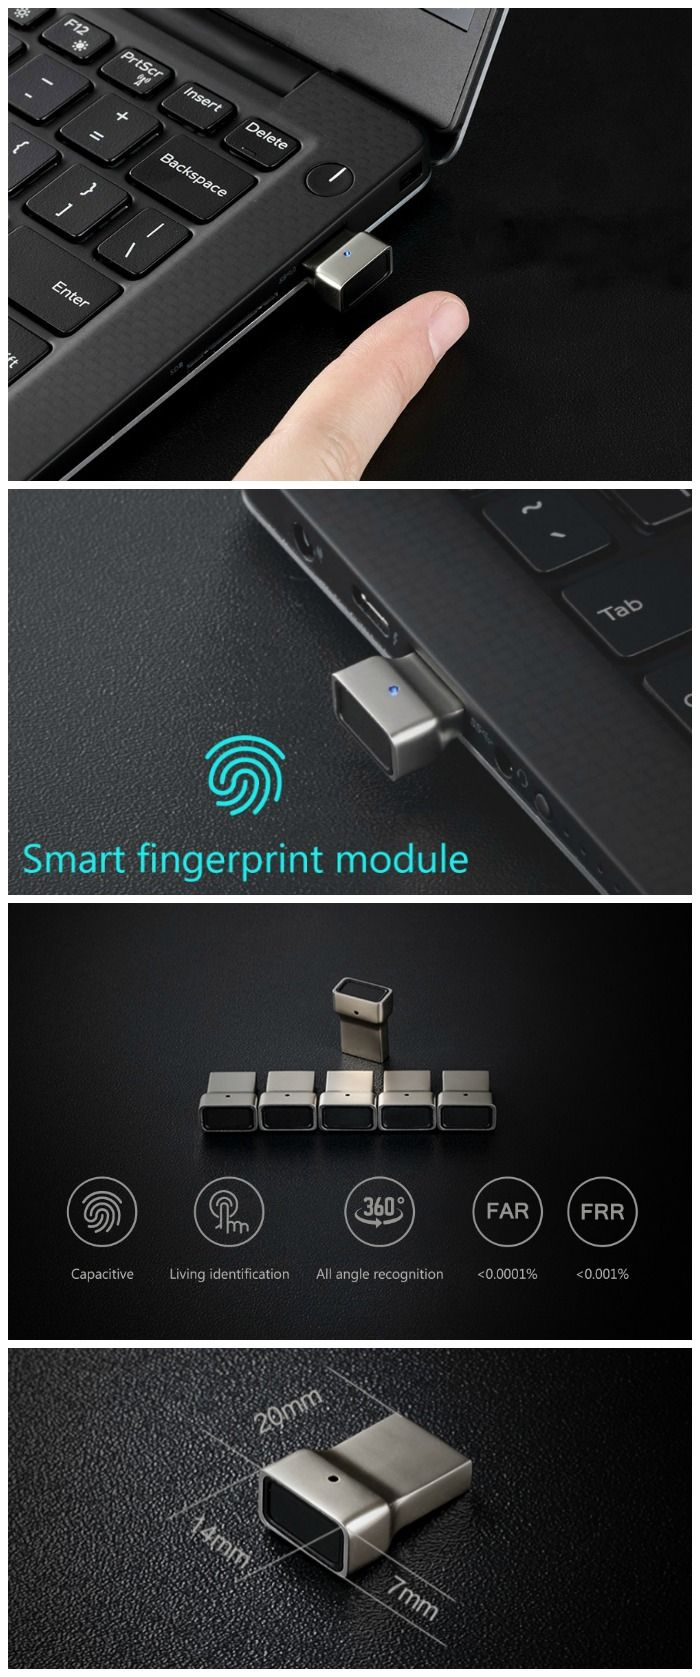 Add the simplicity and the speed of capacitive fingerprint login to just about any Windows laptop with the USB Fingerprint Module.